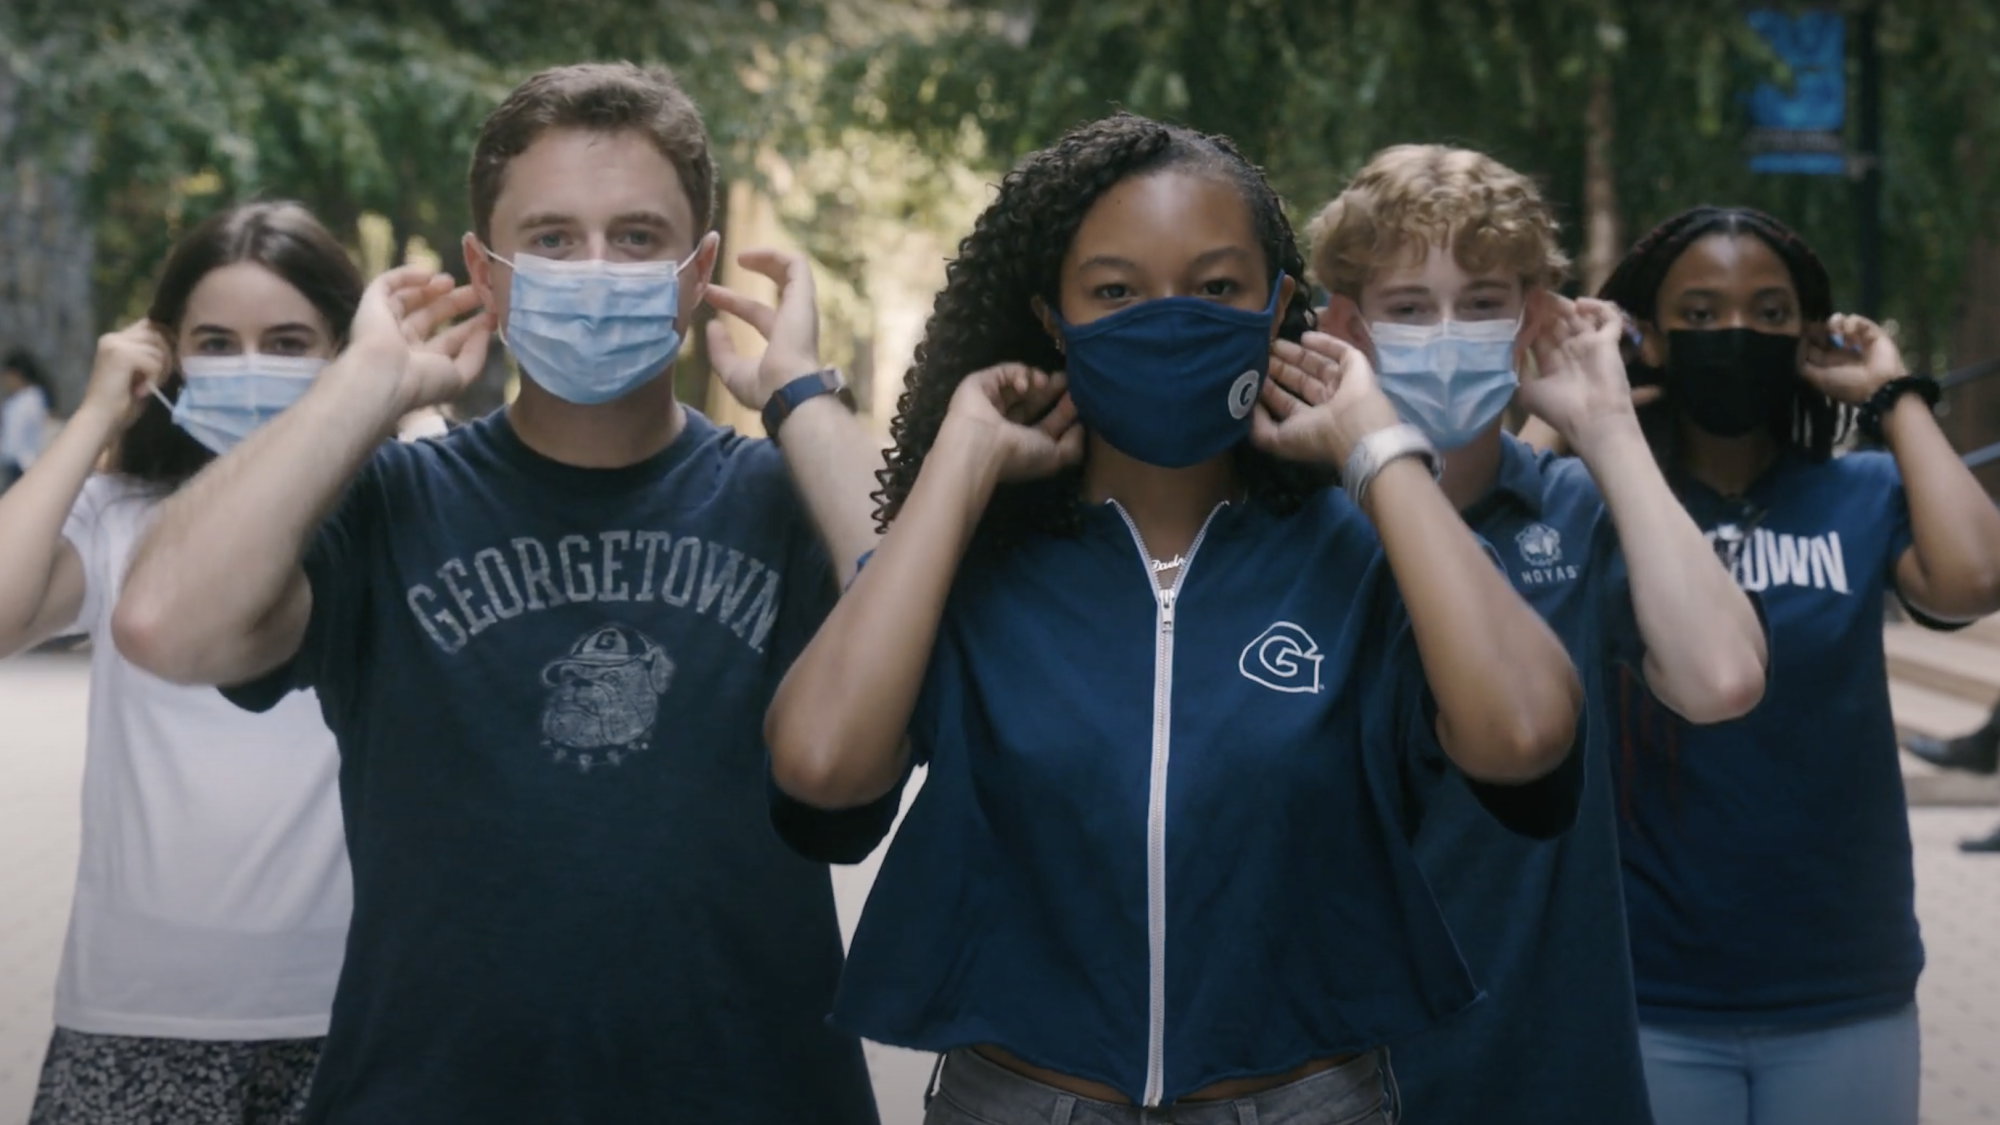 Five students wearing Georgetown apparel put on their masks